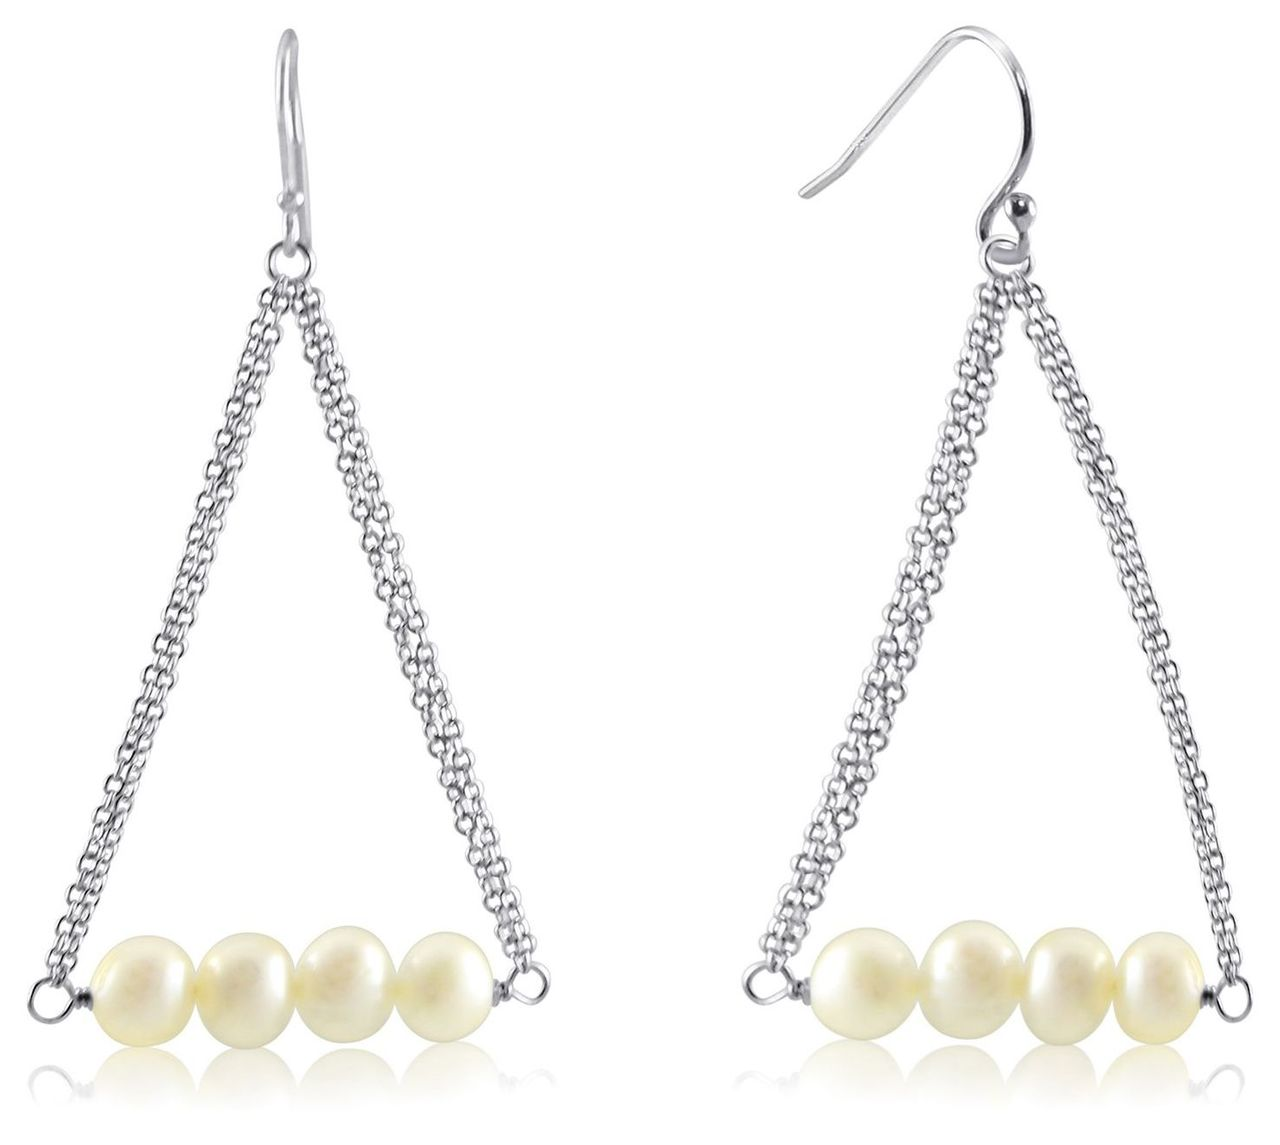 Dangling Freshwater Pearls from Sterling Silver Cable Chain Ear Wire ...